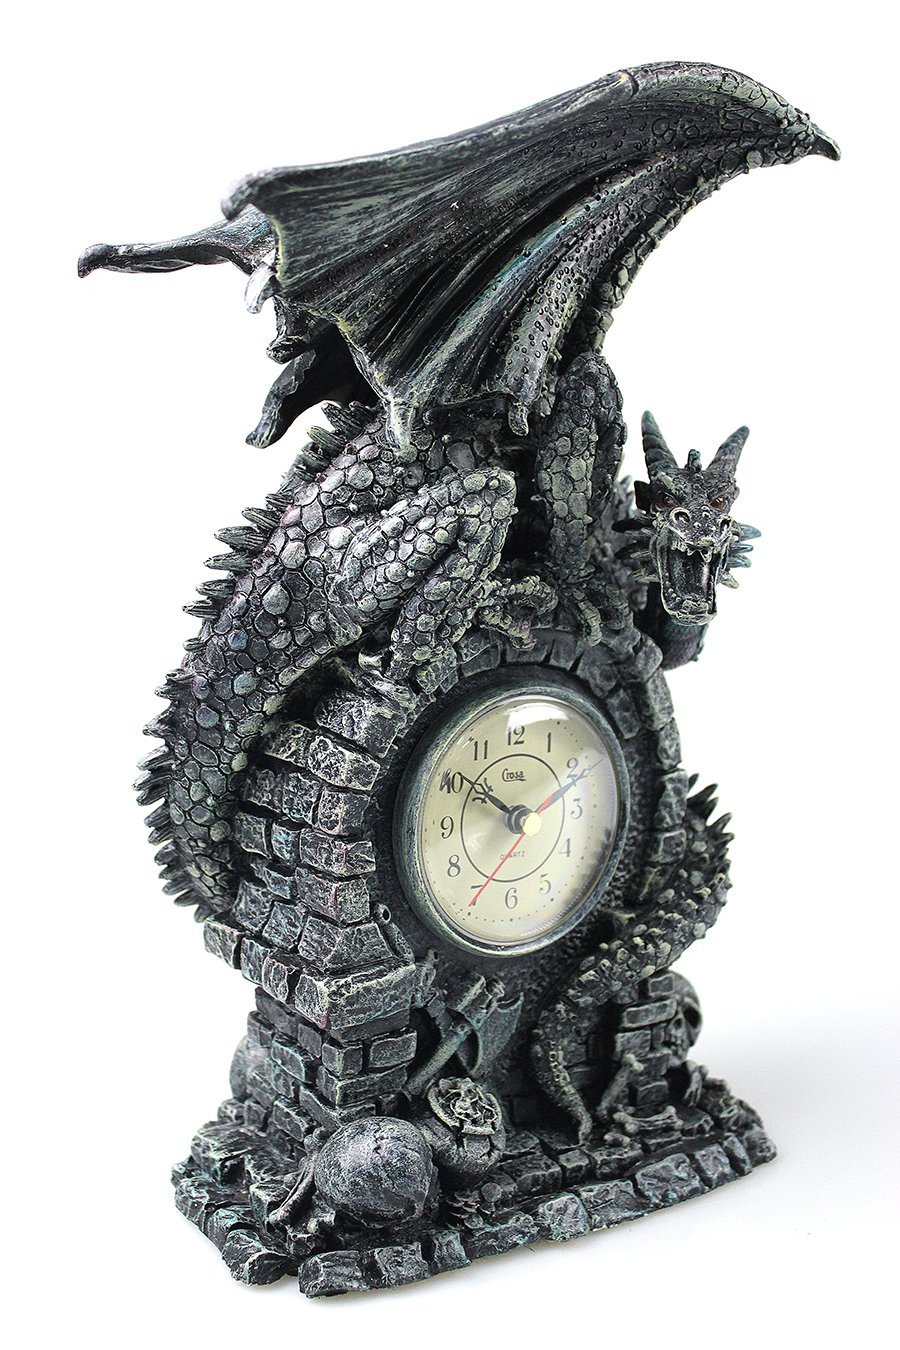 13'' Decorative Gothic Dragons Sculpture Table Clock, Heavy Duty Antiqued Medieval Winged Dragon Statue Art Home Decor